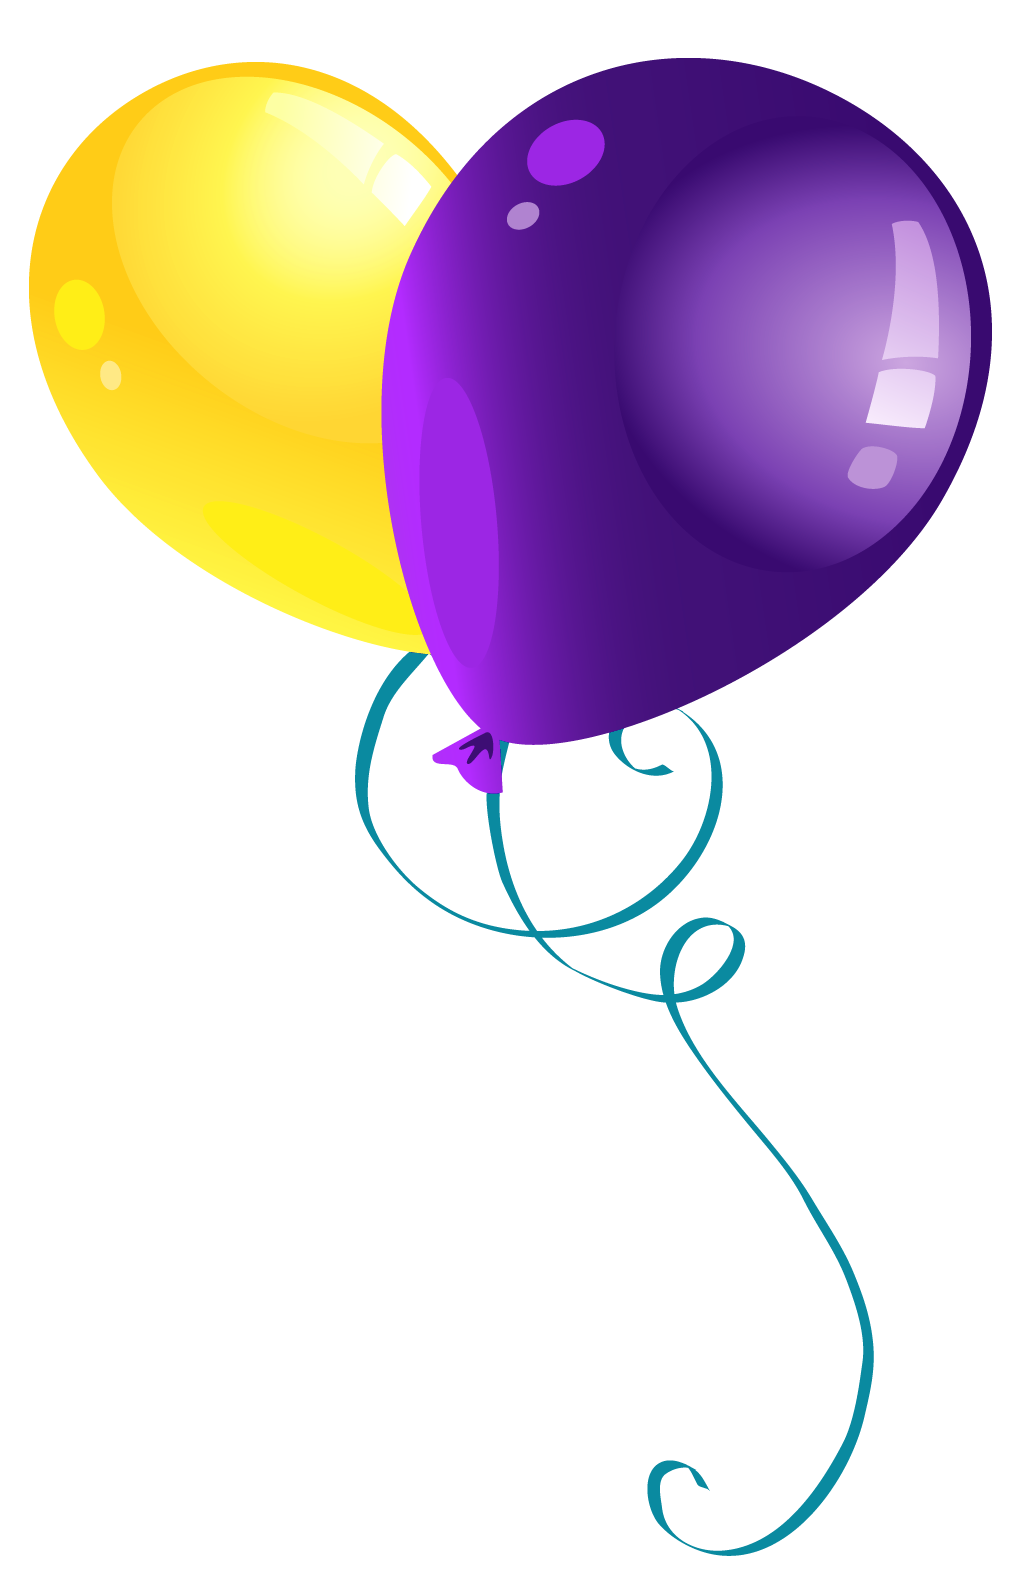 Memories clipart purple tree. Yellow and balloons png